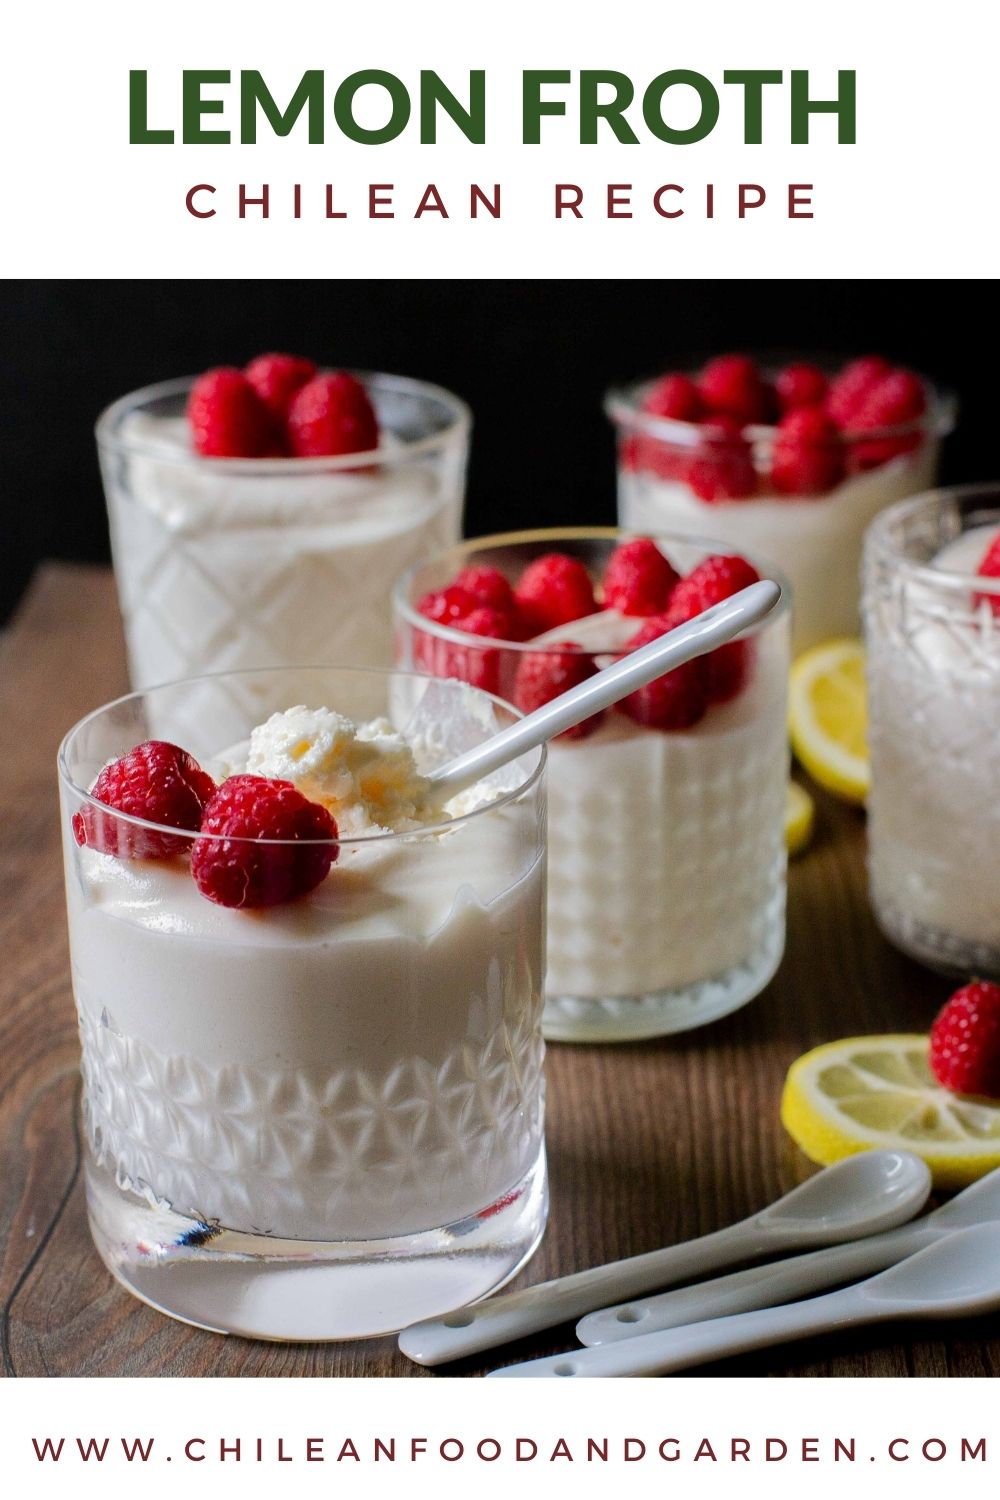 Lemon Froth Dessert